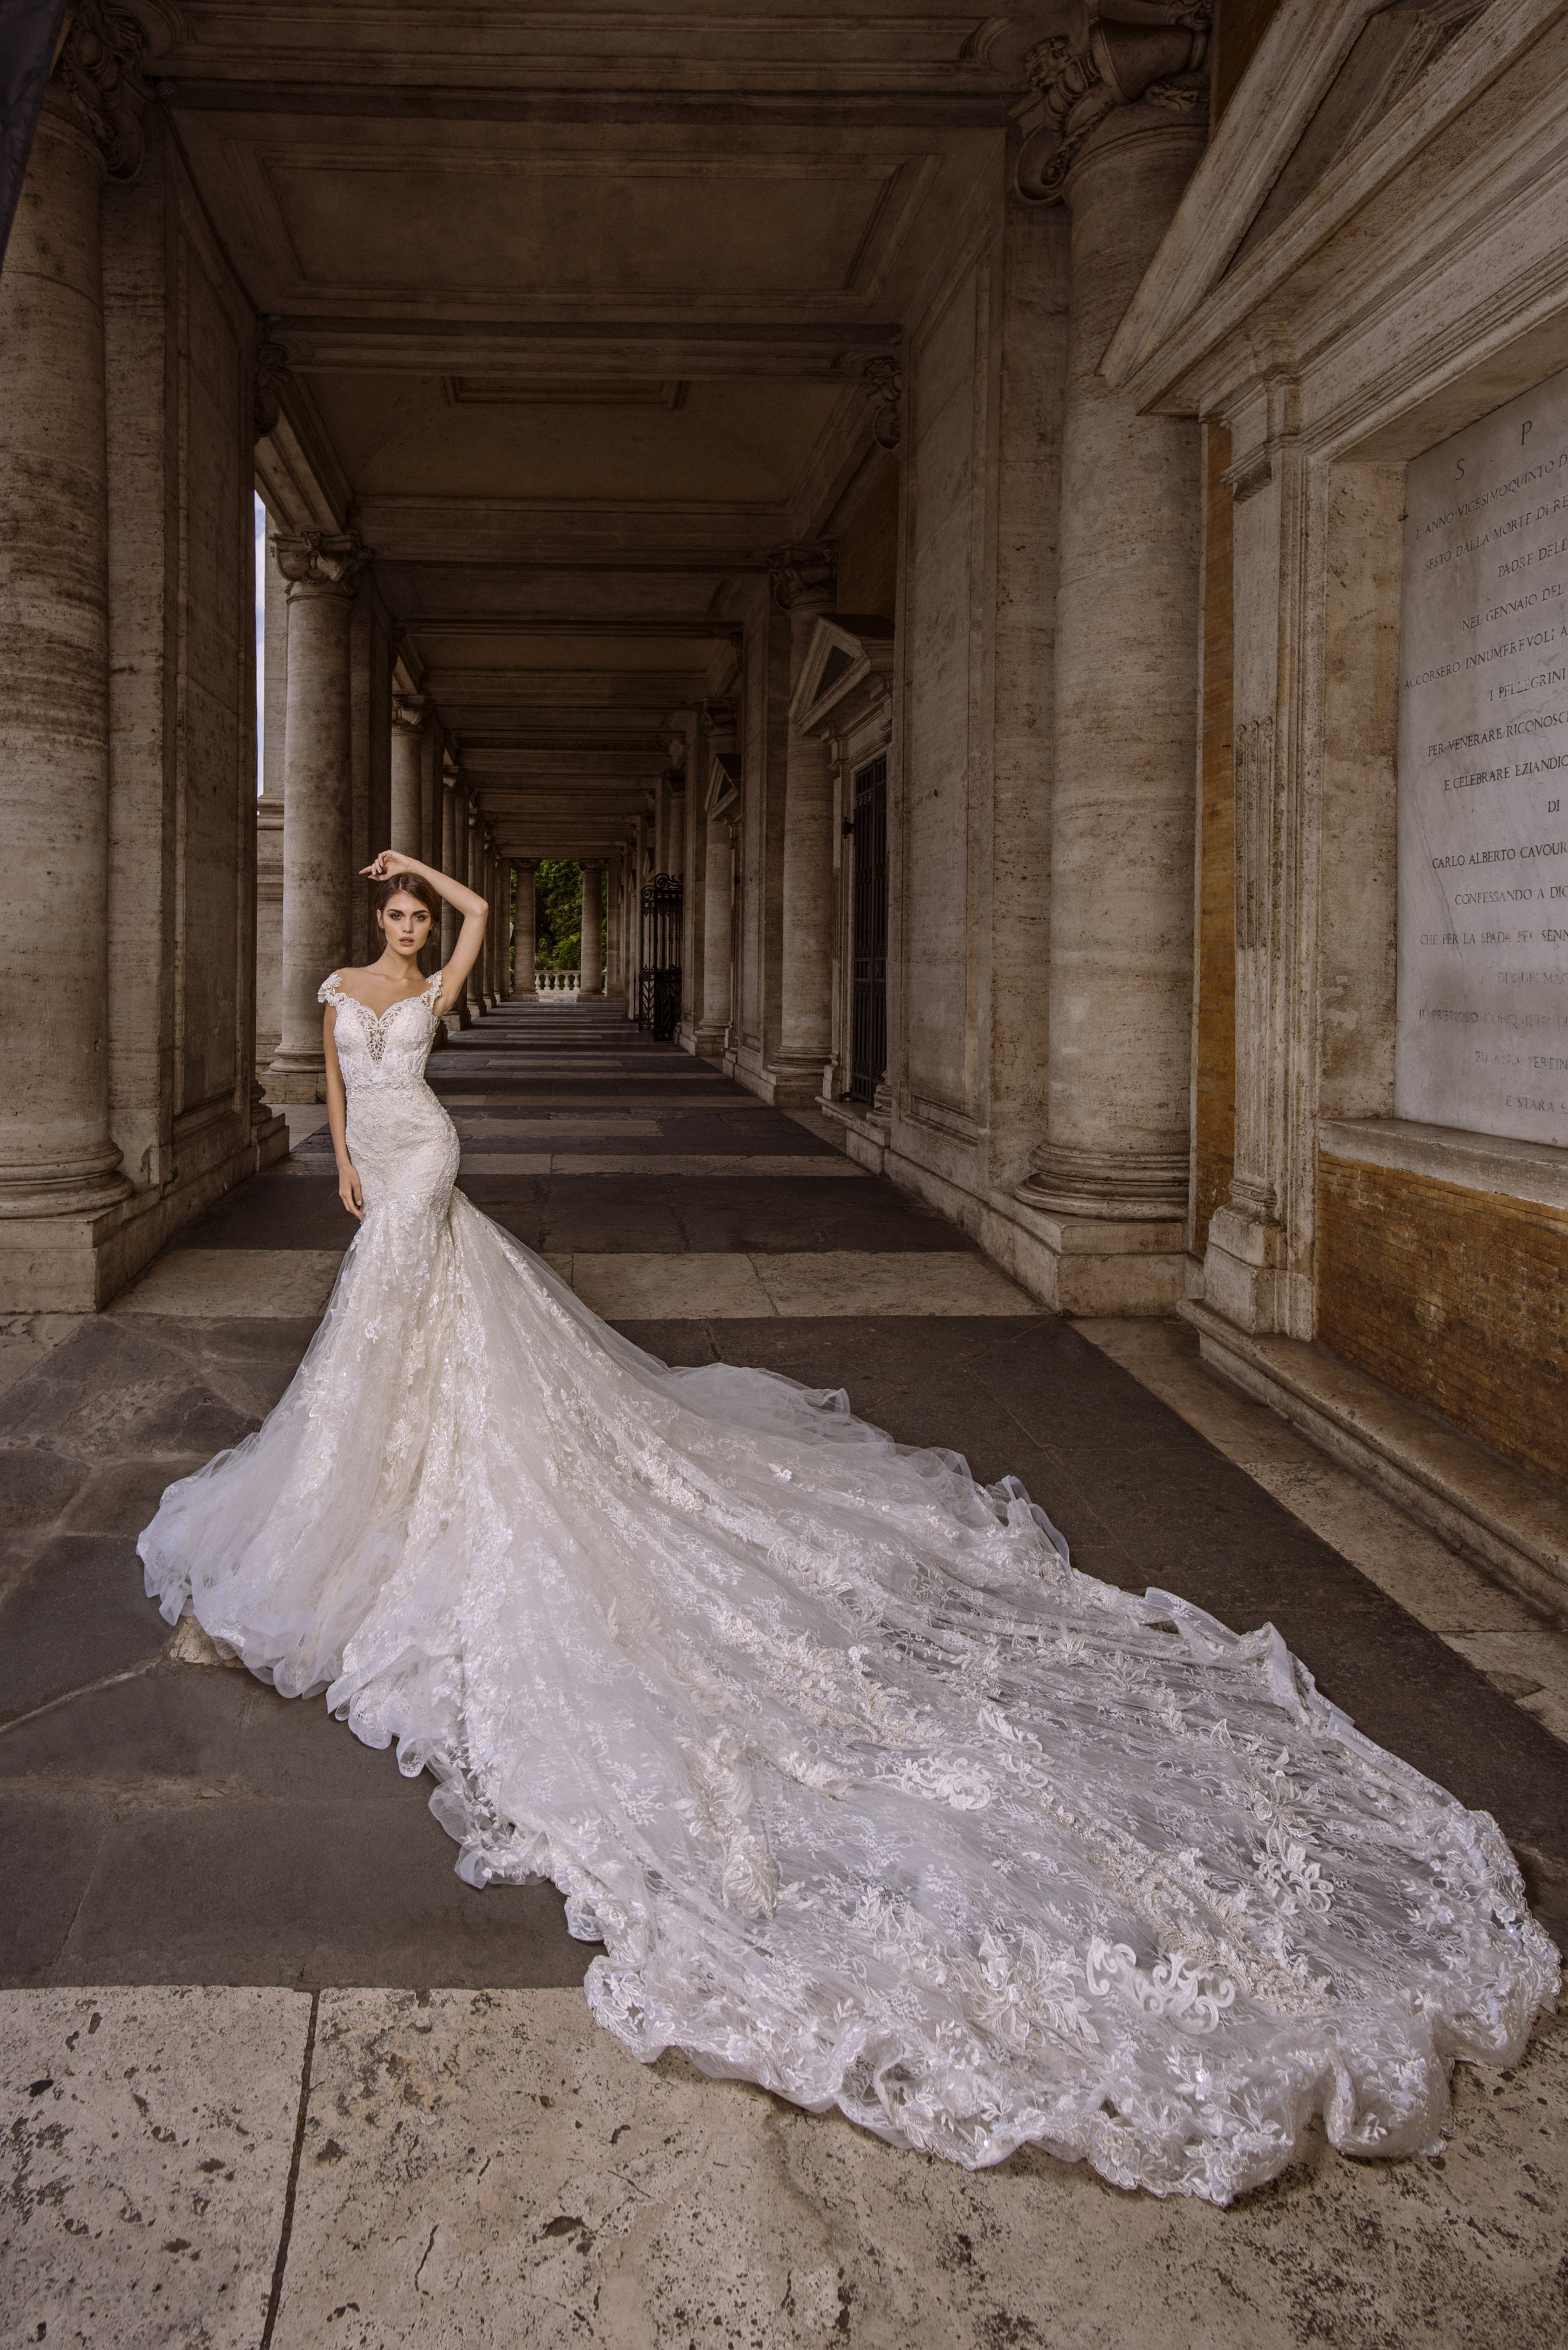 Julia Kontogruni - This long sleeve lace mermaid wedding gown features a detachable skirt and is embellished with crystals and pearls. The illusion back leads into an exposed zipper with crystal beading and buttons going up the back. Also features a royal cathedral train.